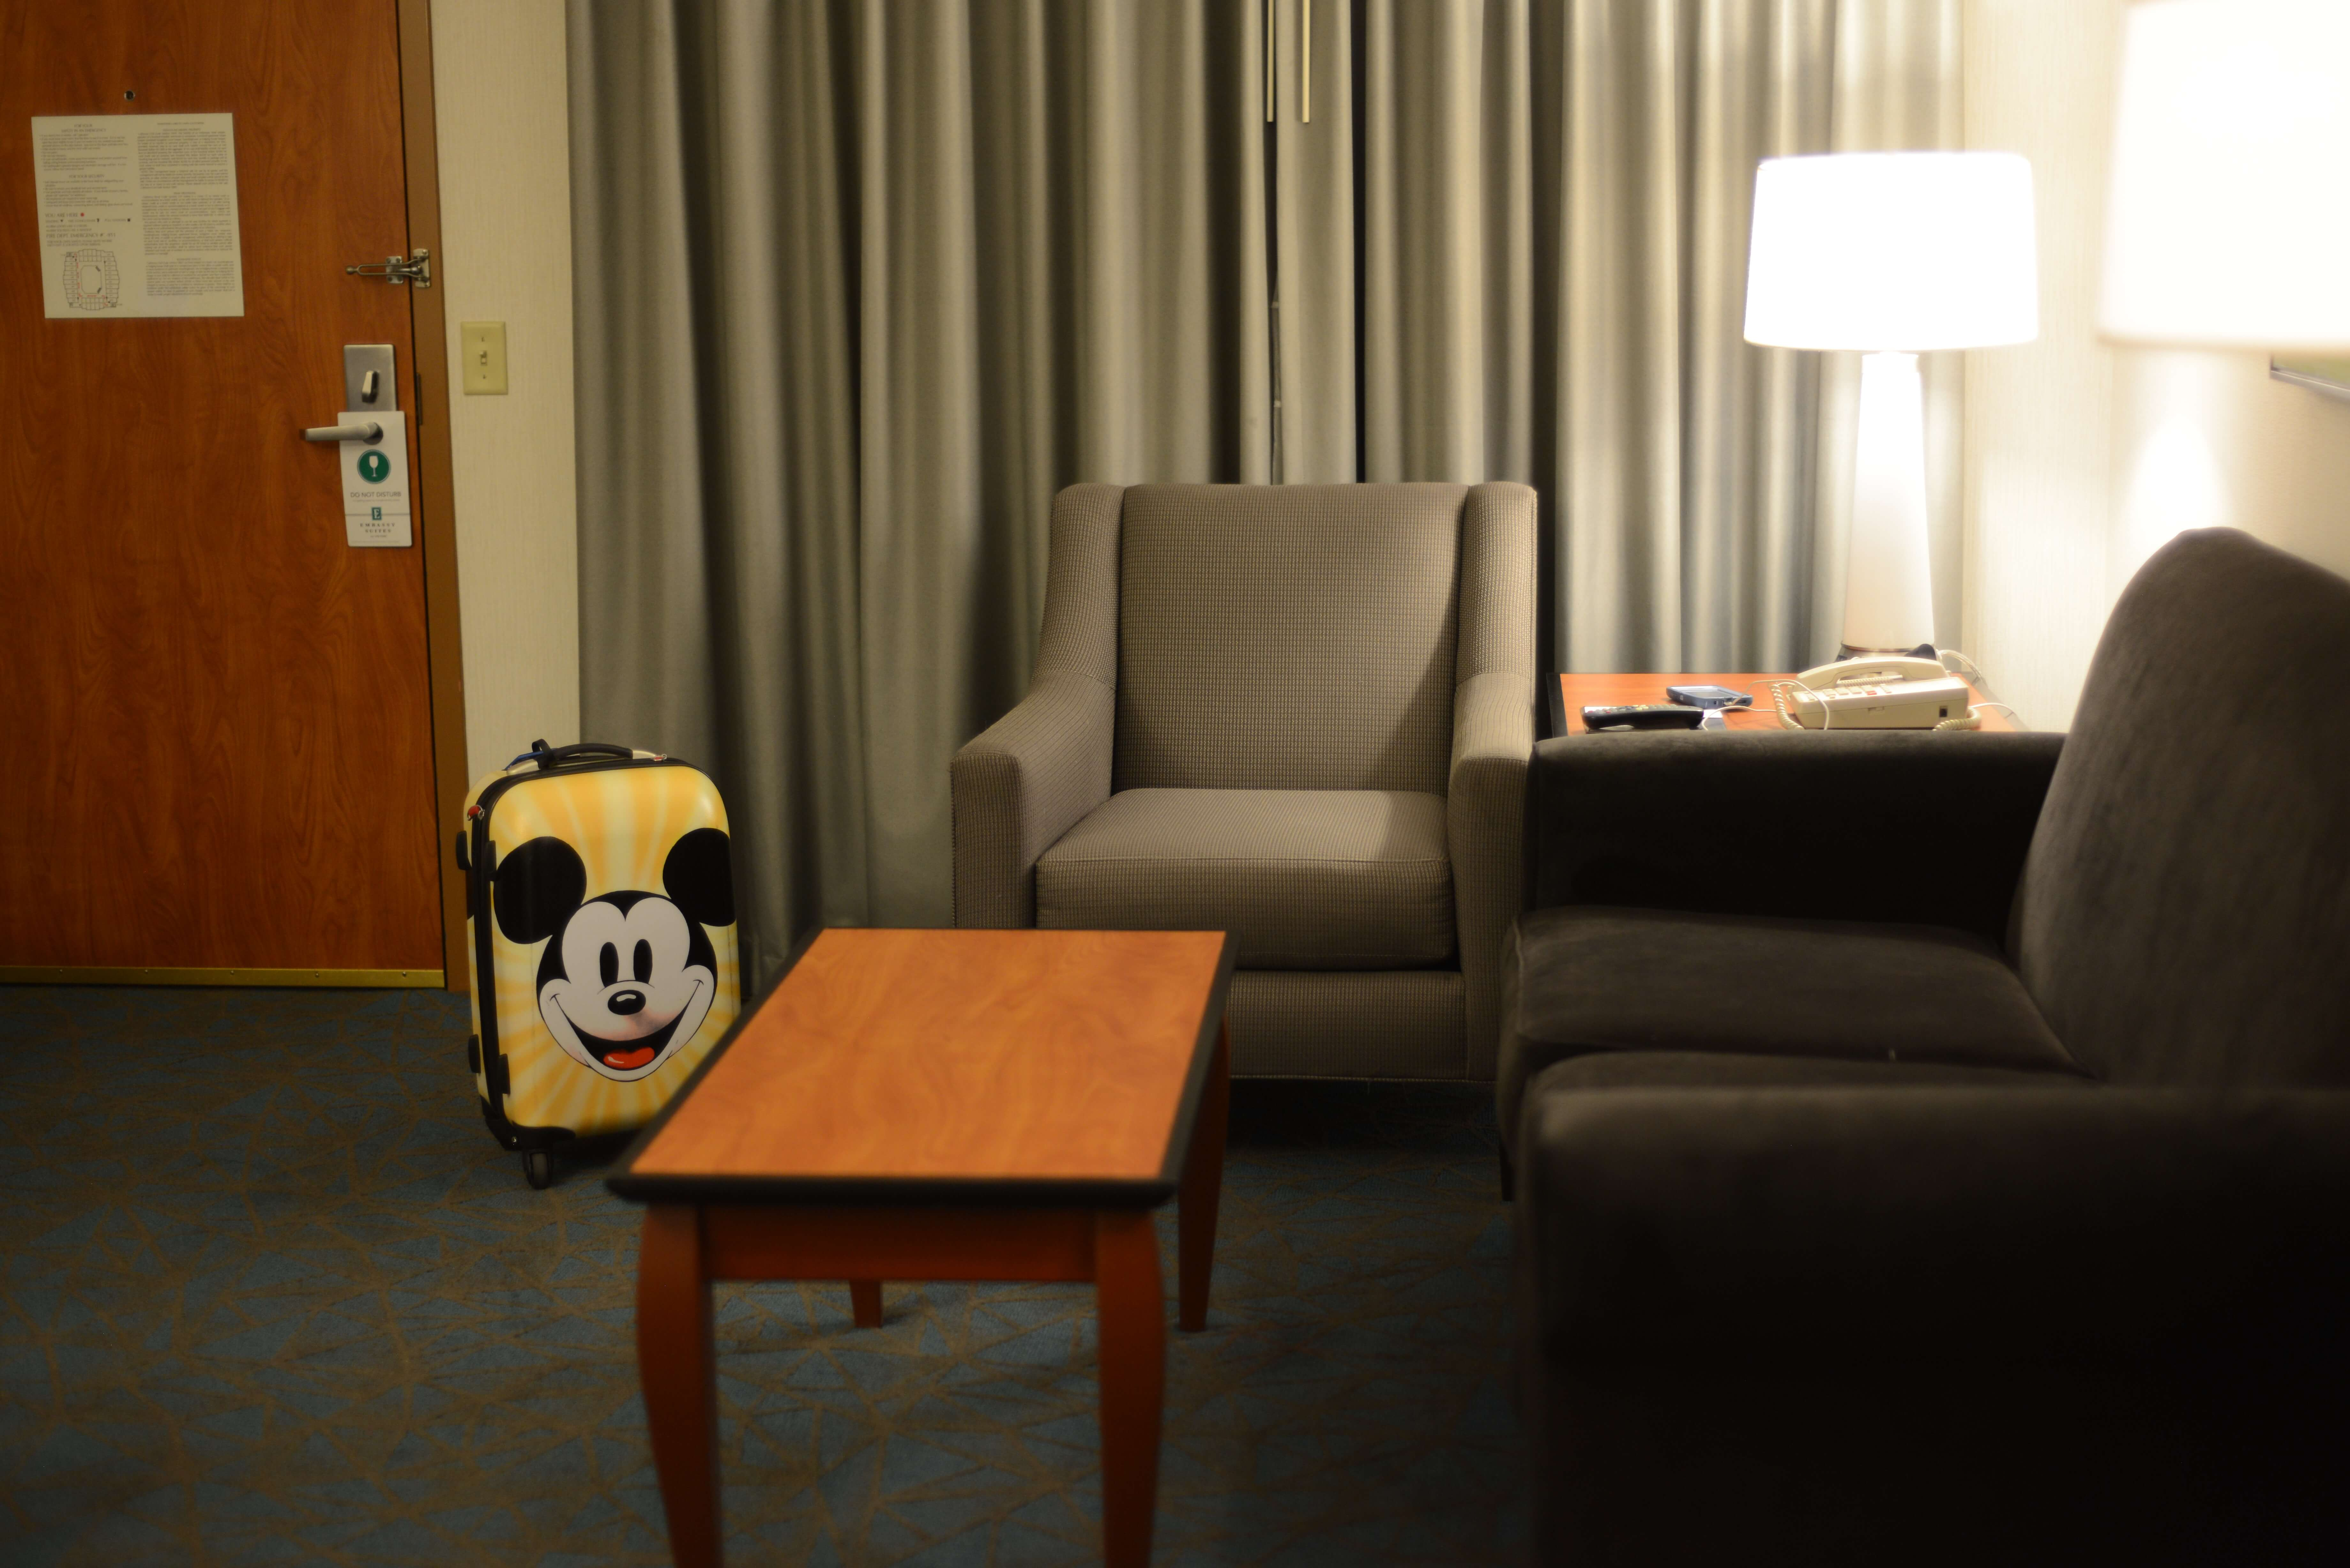 Embassy Suites Anaheim North suite room and a short distance from Disneyland